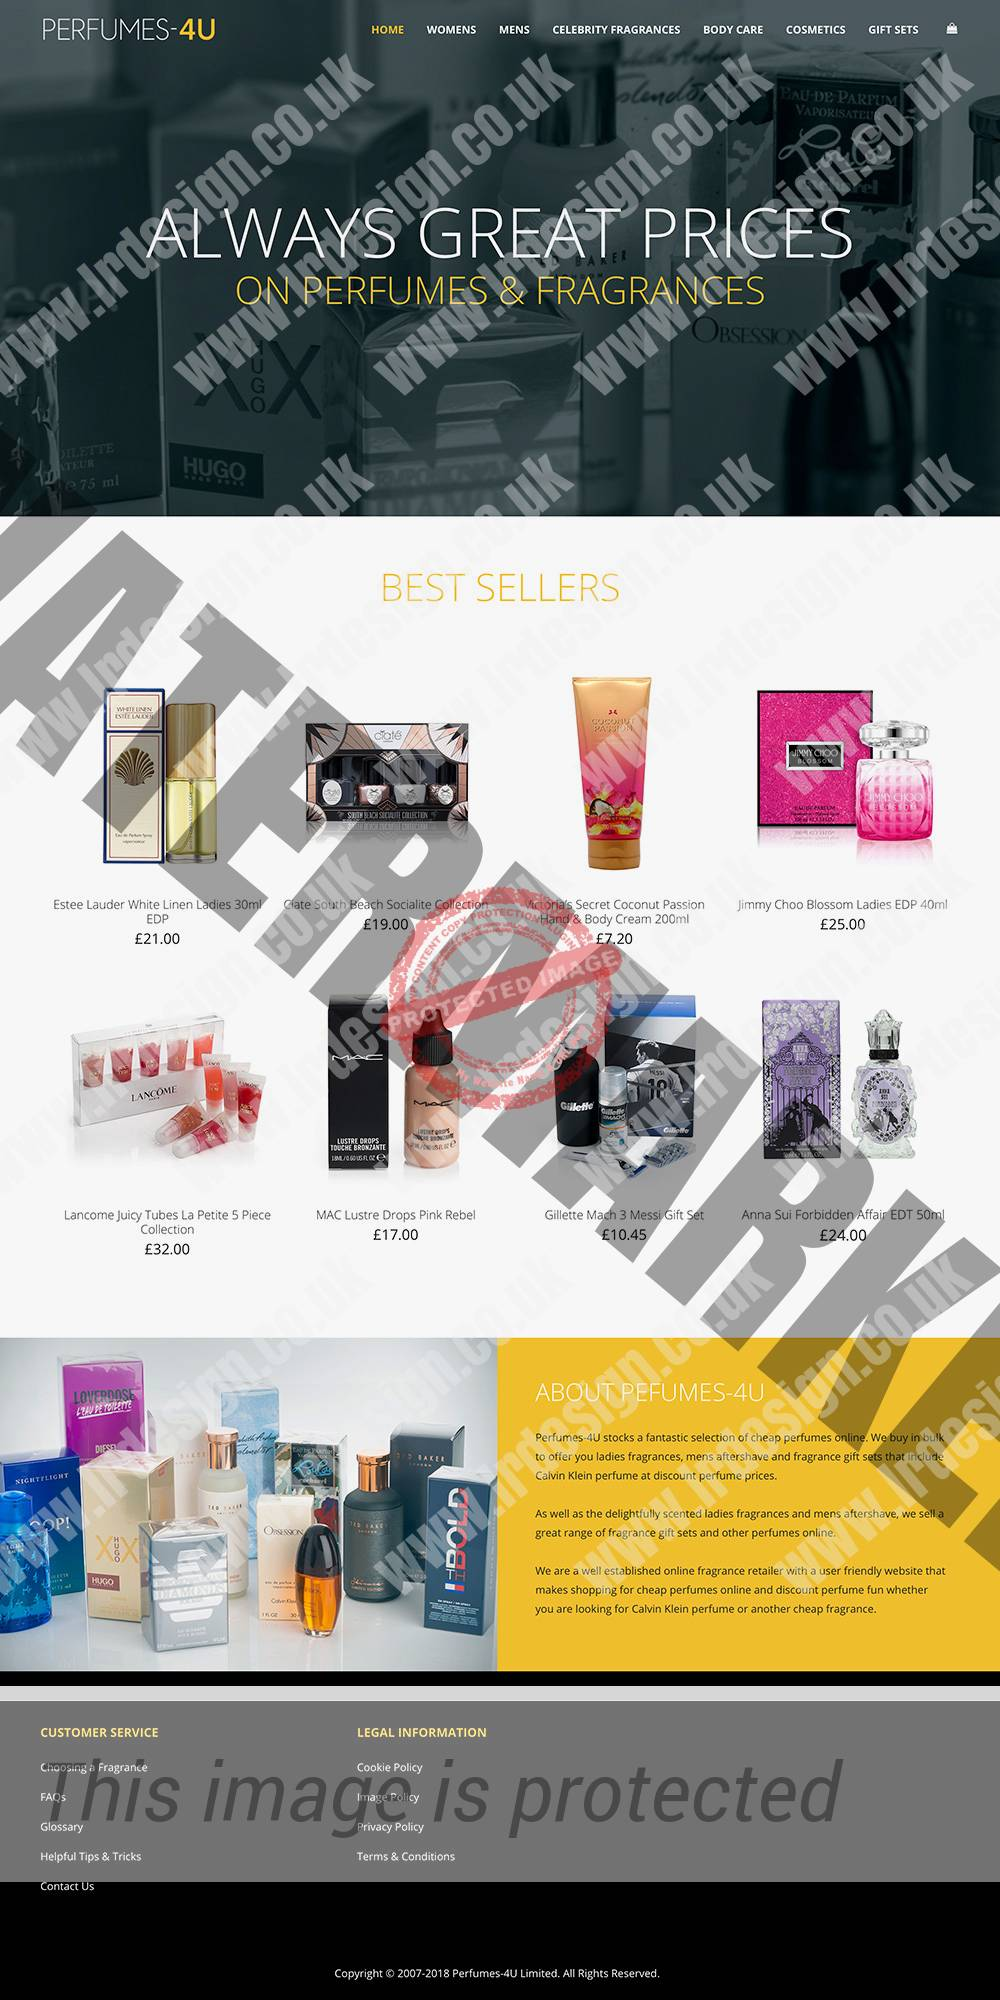 Perfumes-4U website home page.